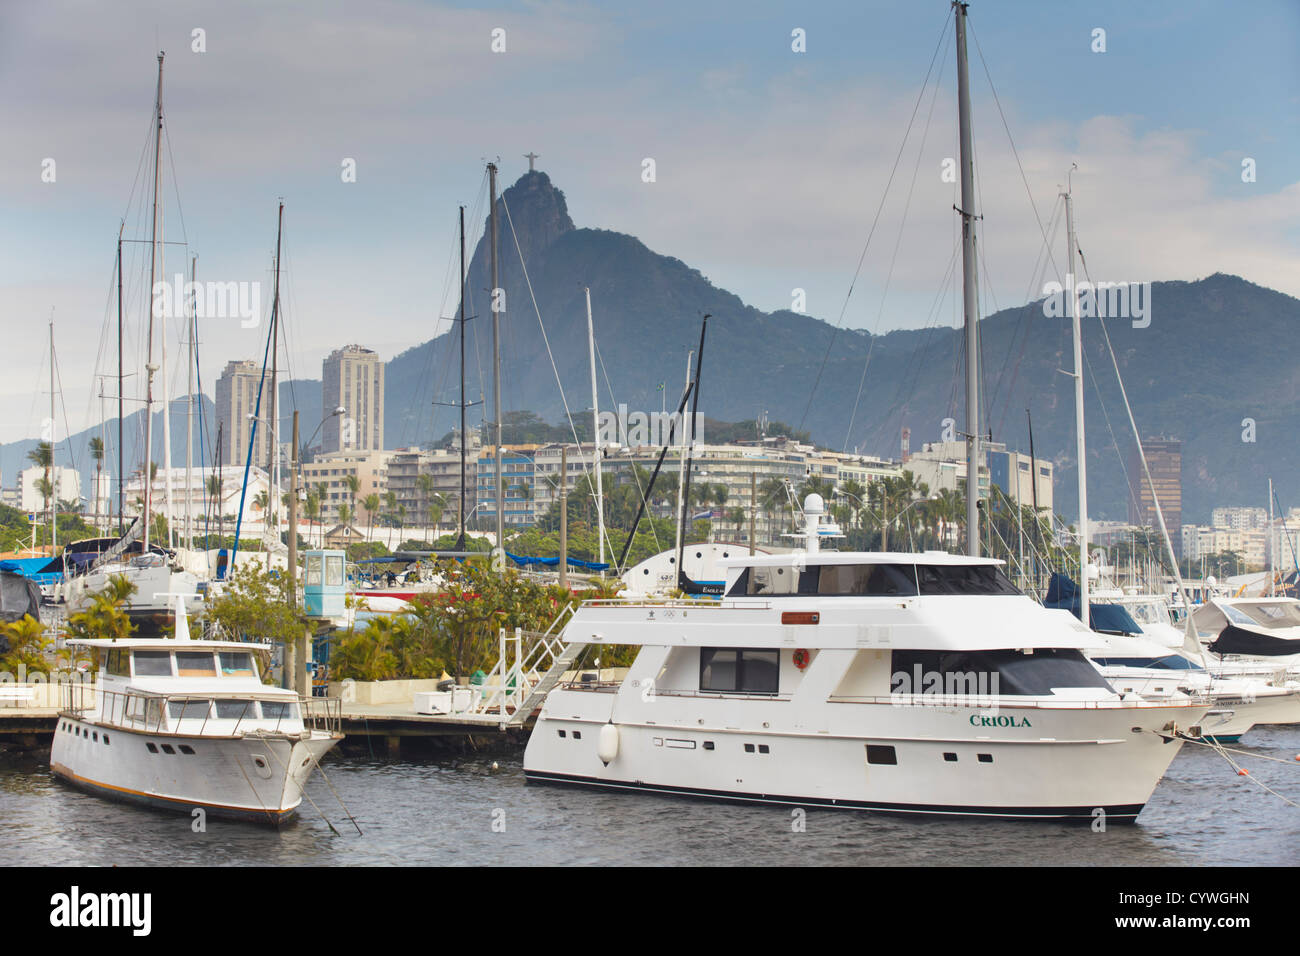 Boats in Guanabara Bay with Christ the Redeemer statue in background, Urca, Rio de Janeiro, Brazil Stock Photo